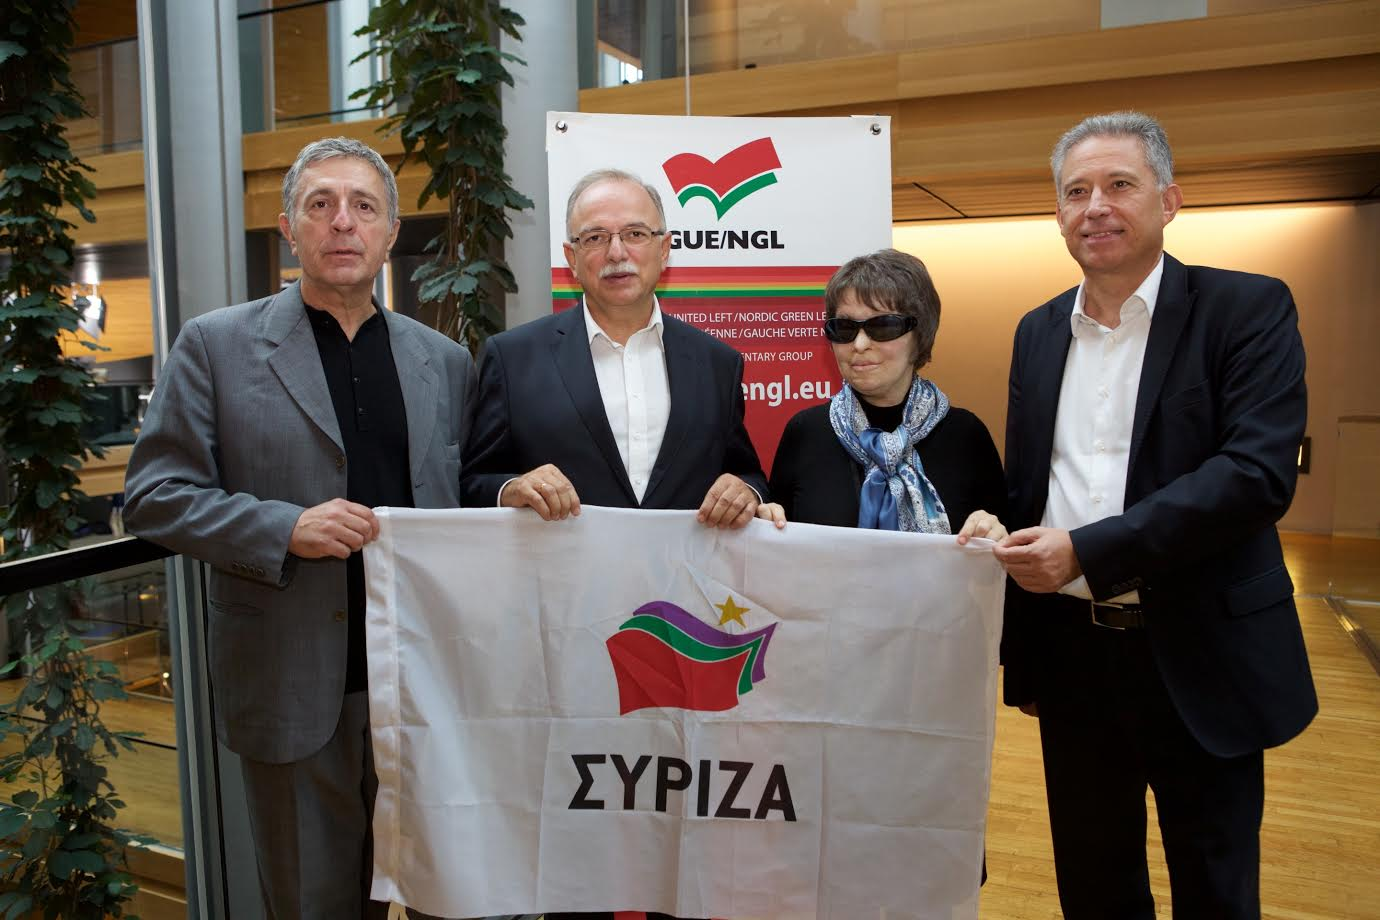 SYRIZA MEPs: A Social Europe is the proposal of progressive forces